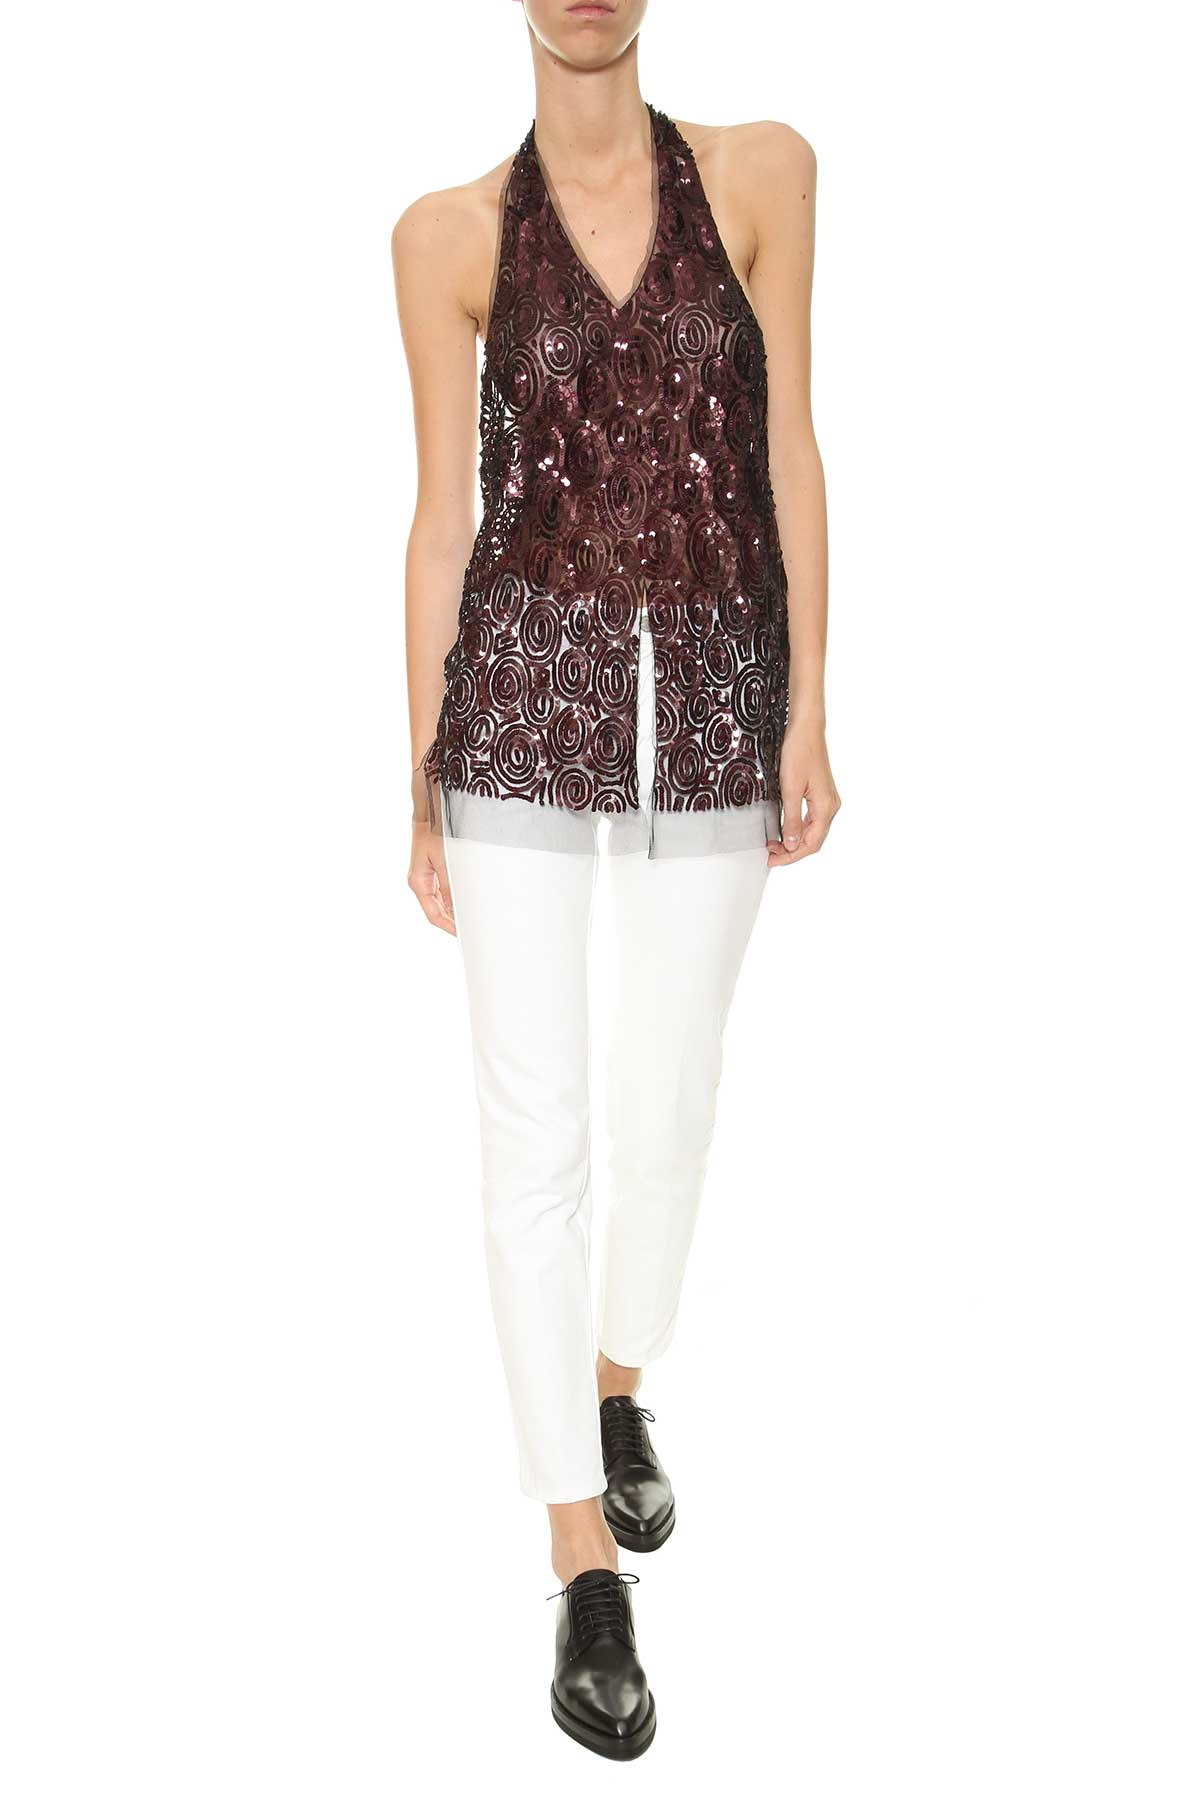 Dries Van Noten Dries Van Noten Sequins Top